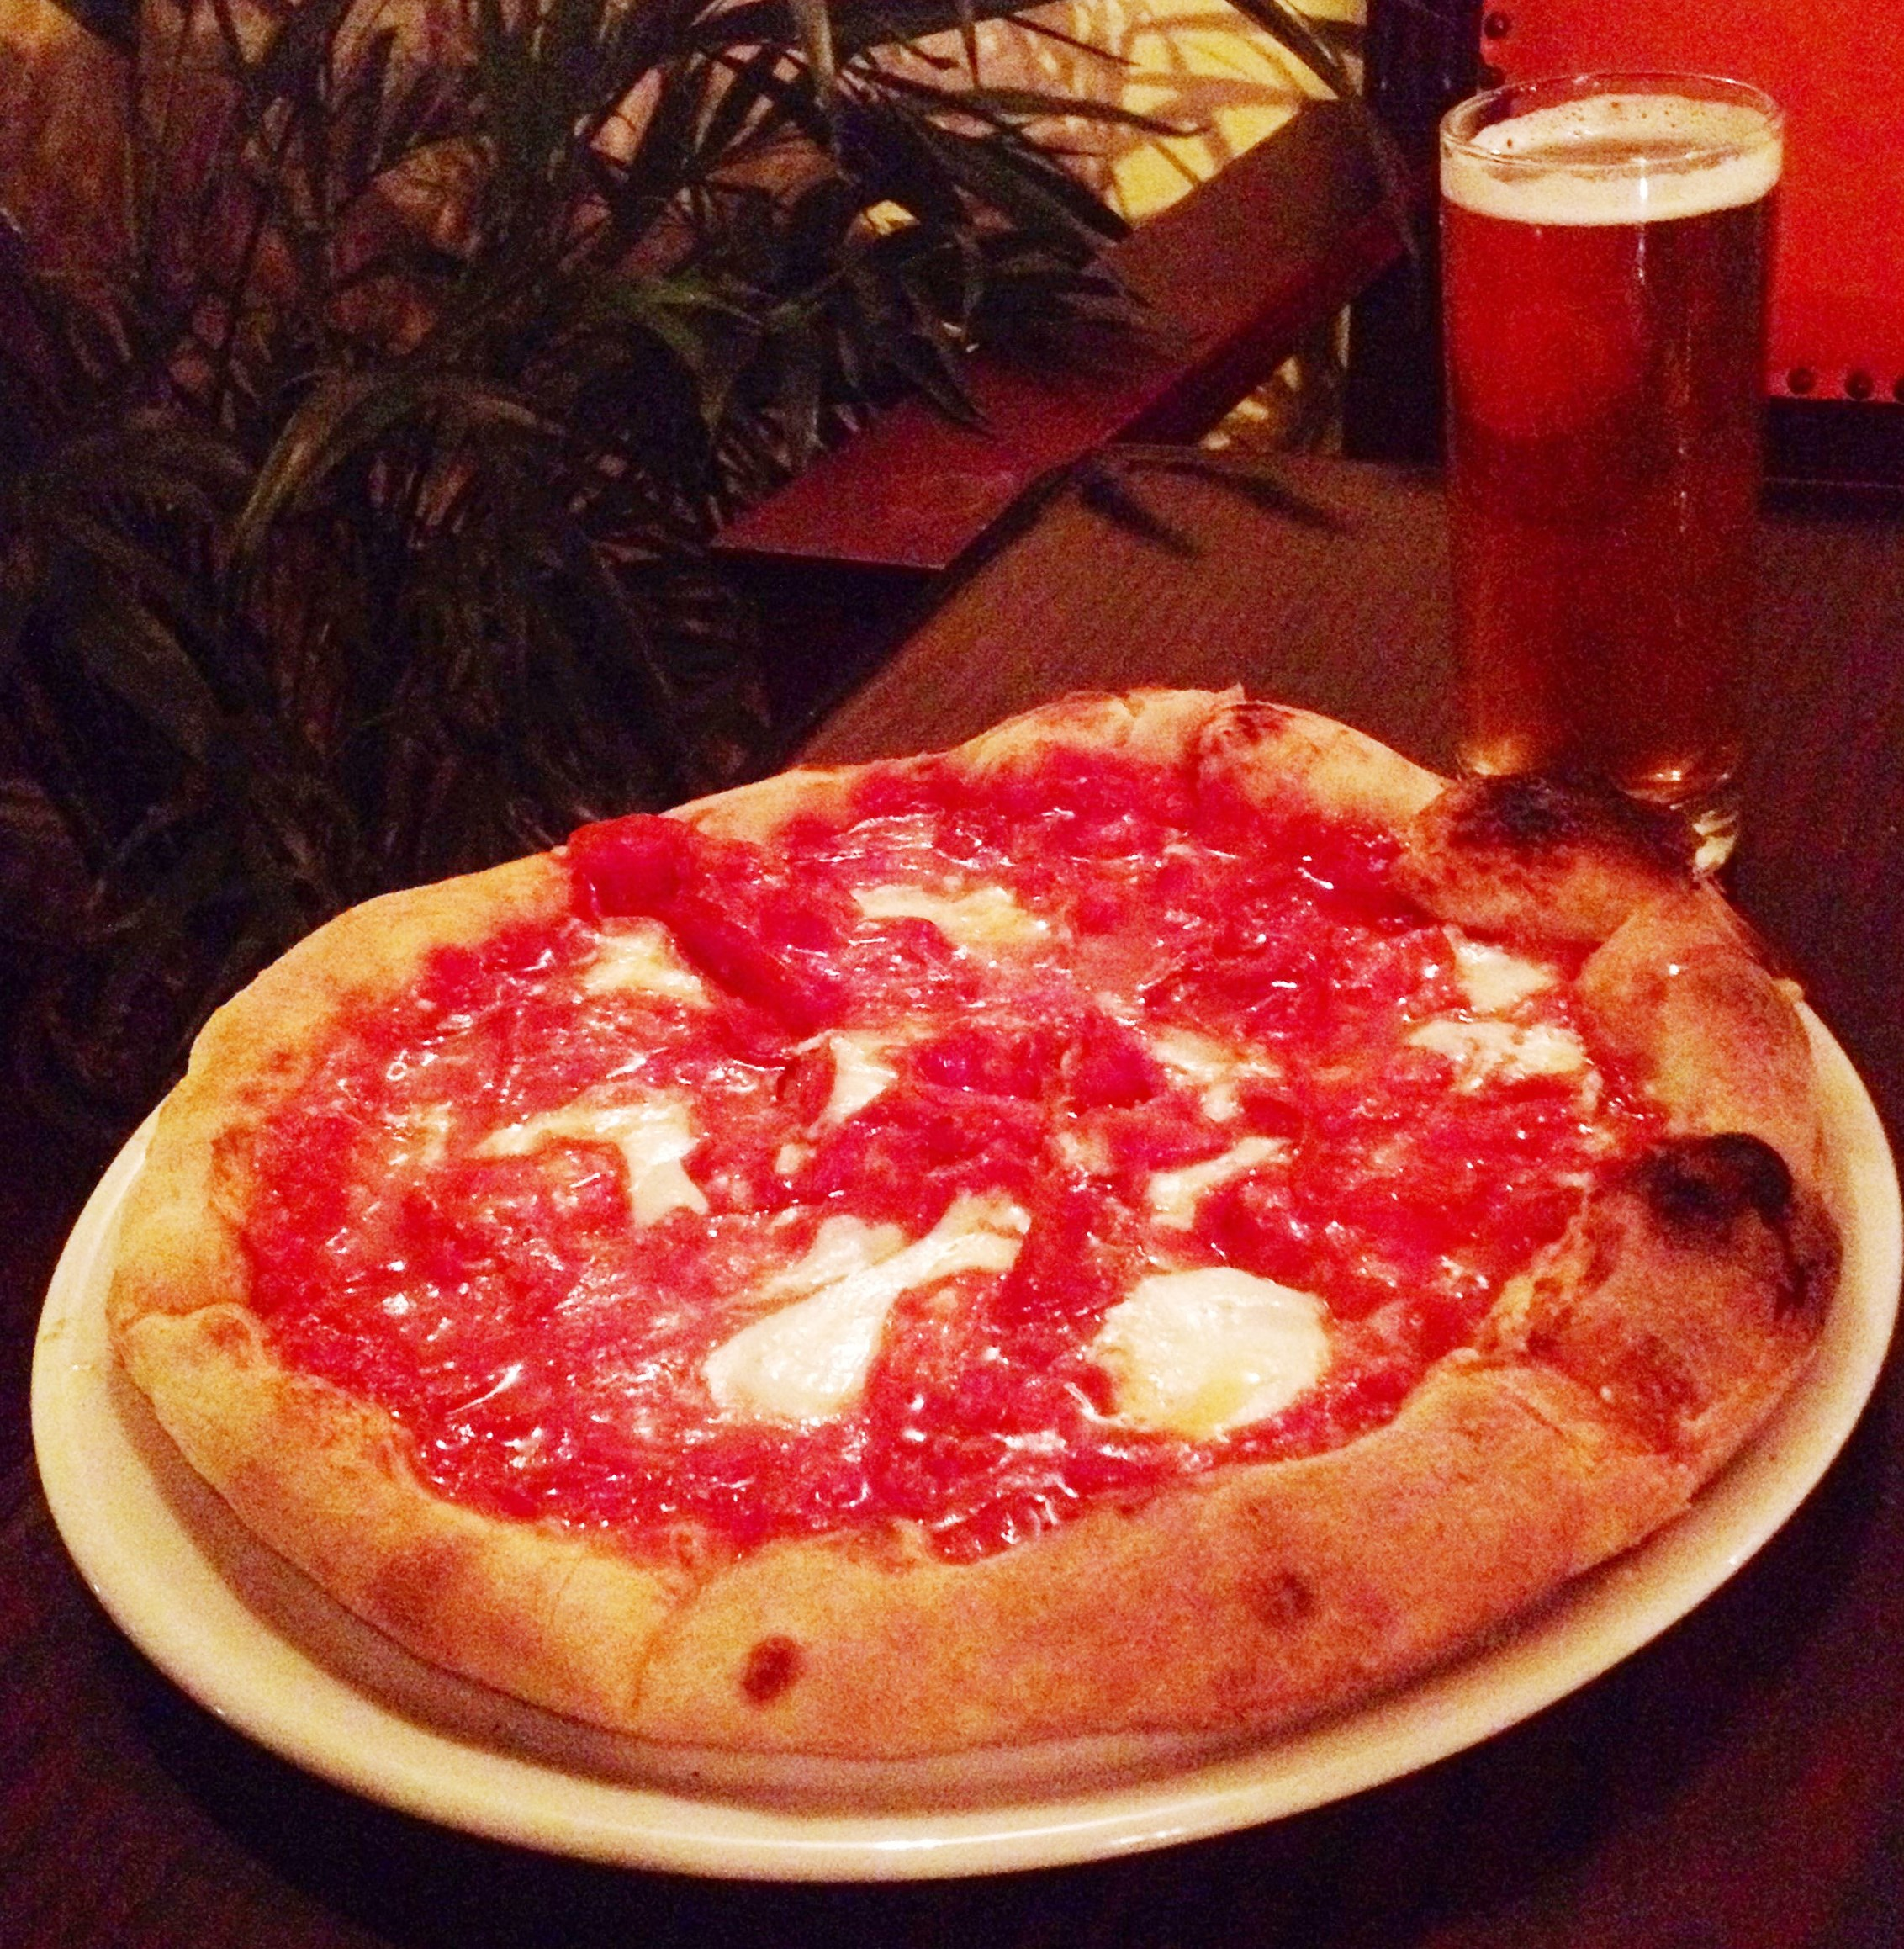 Munch Goes To Pizza Taglio In East Liberty